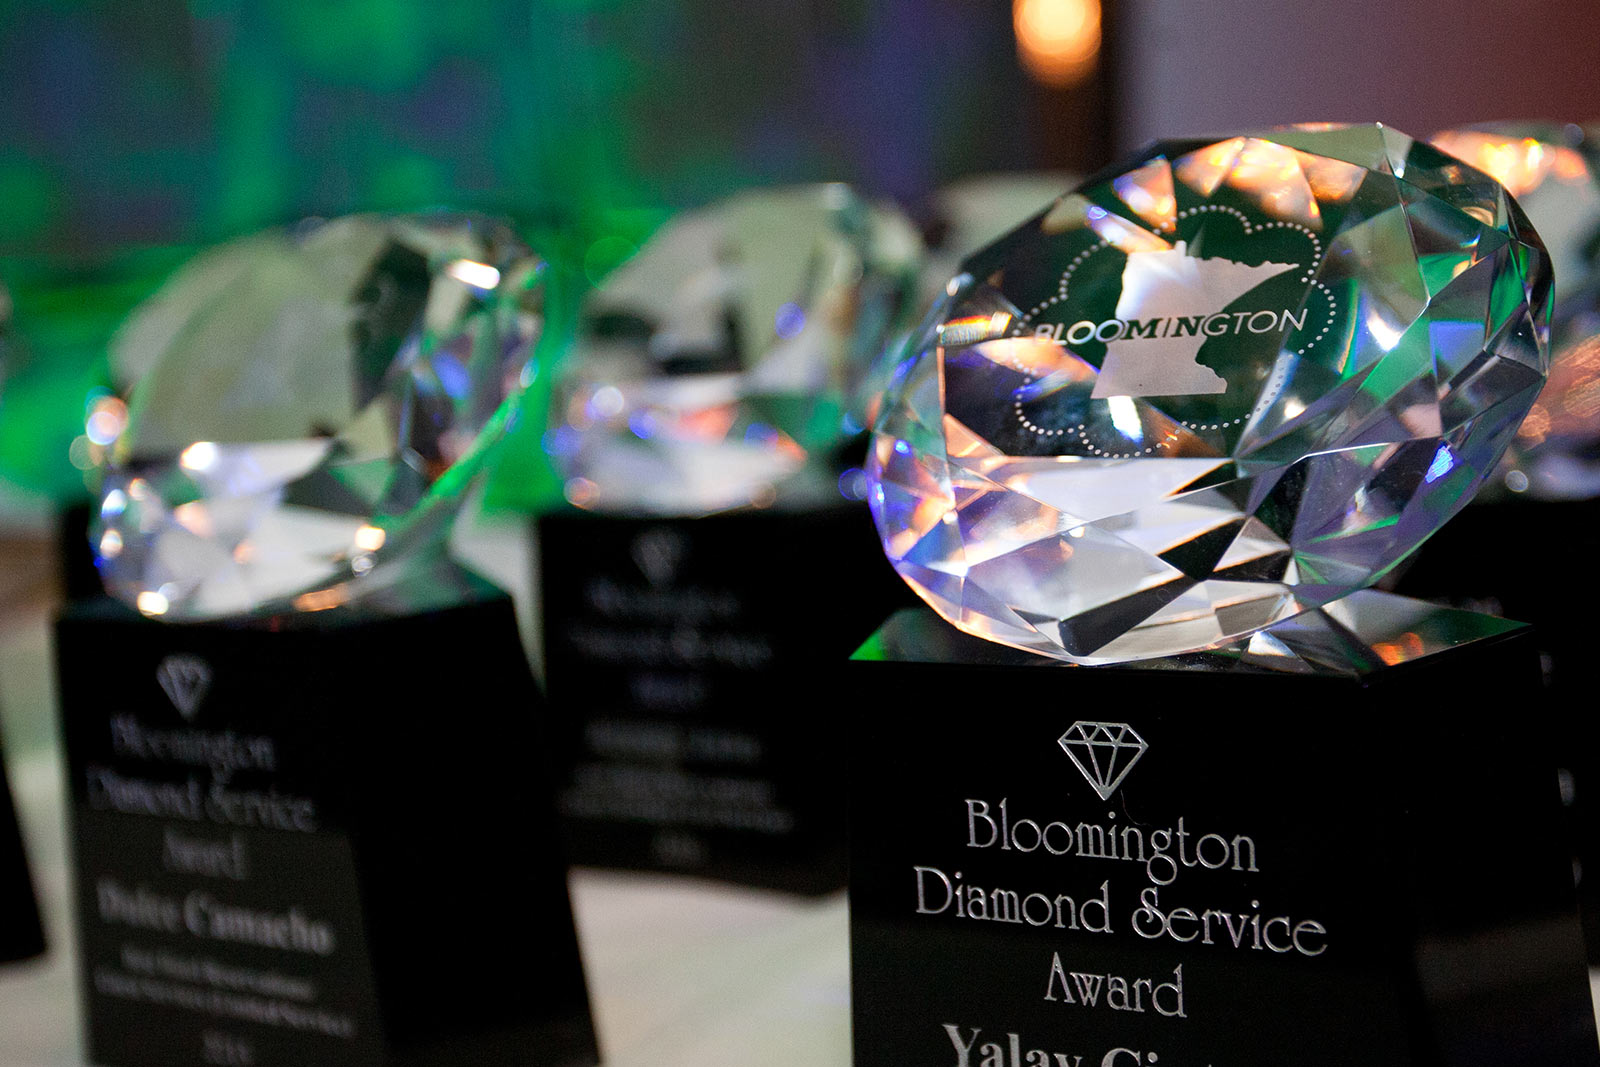 Diamond Service Awards